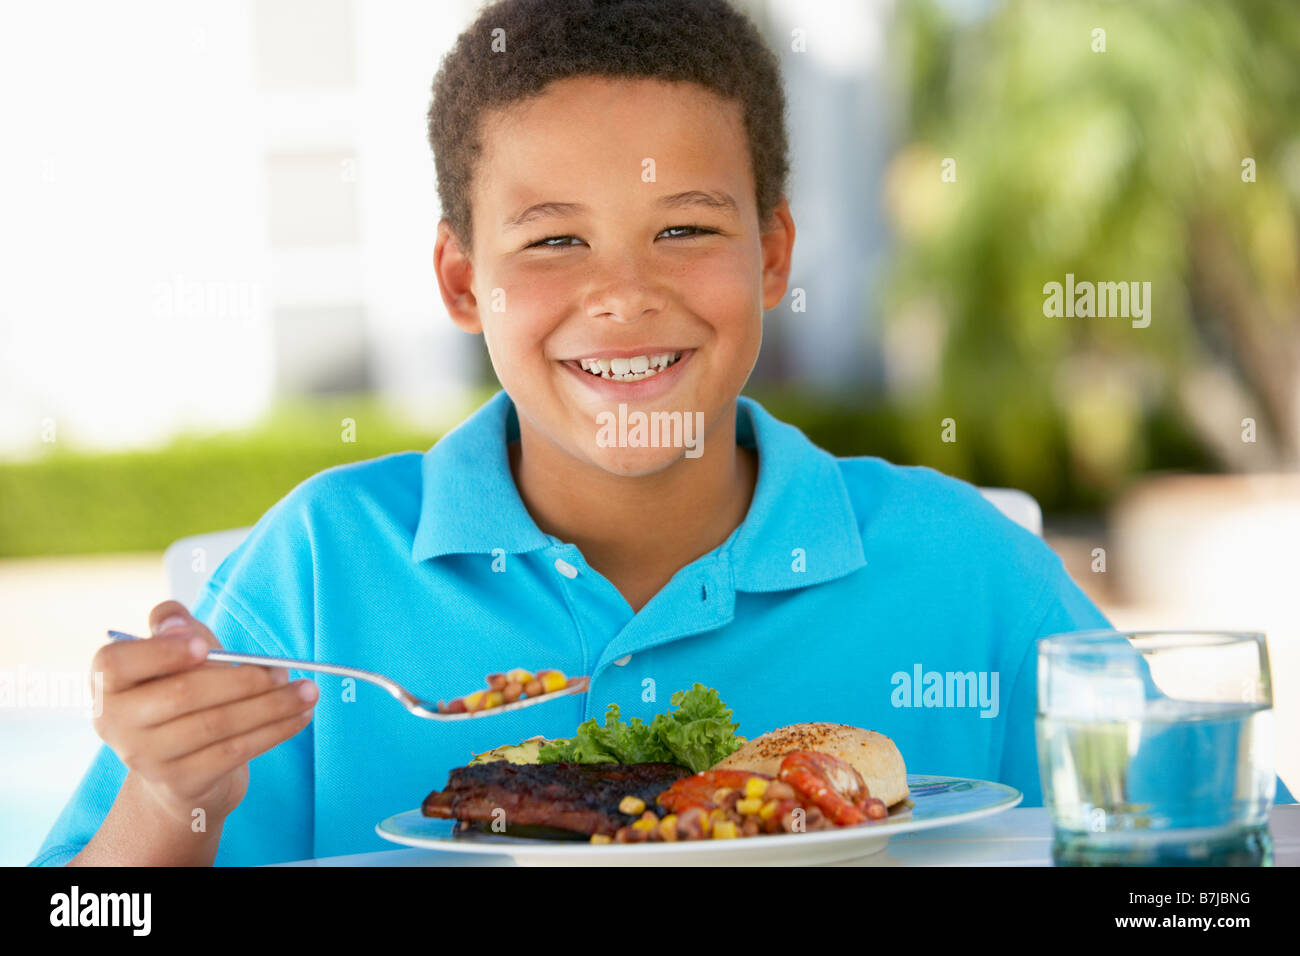 Young Boy Dining Al Fresco - Stock Image